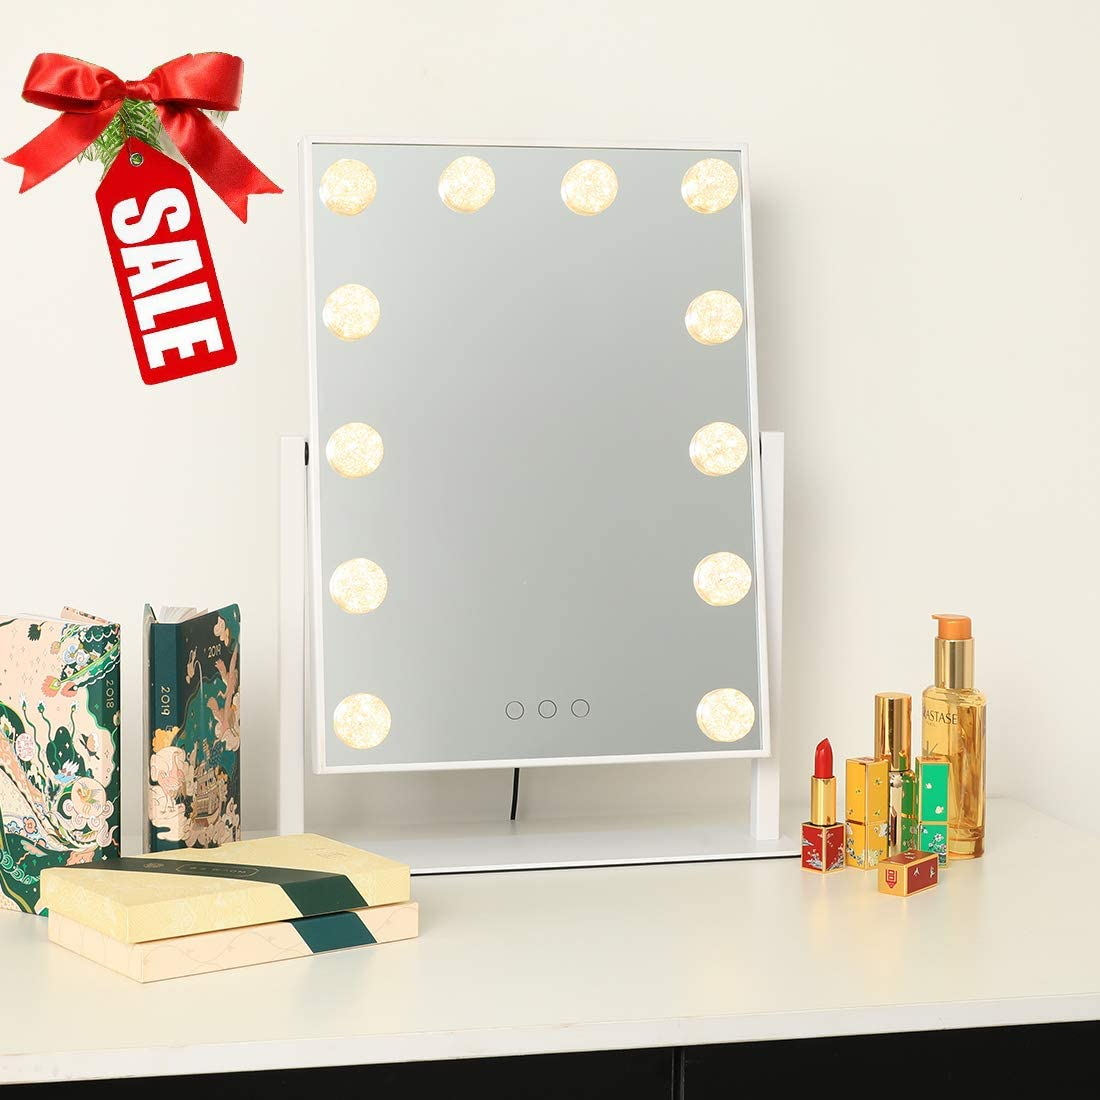 ICREAT Makeup Mirror with Lights, Hollywood Vanity Mirror, 360 Rotation Cosmetic Mirror, 3 Color Modes Lighted Mirror, Touch Screen Mirror with 12 Dimmable Bulbs, White